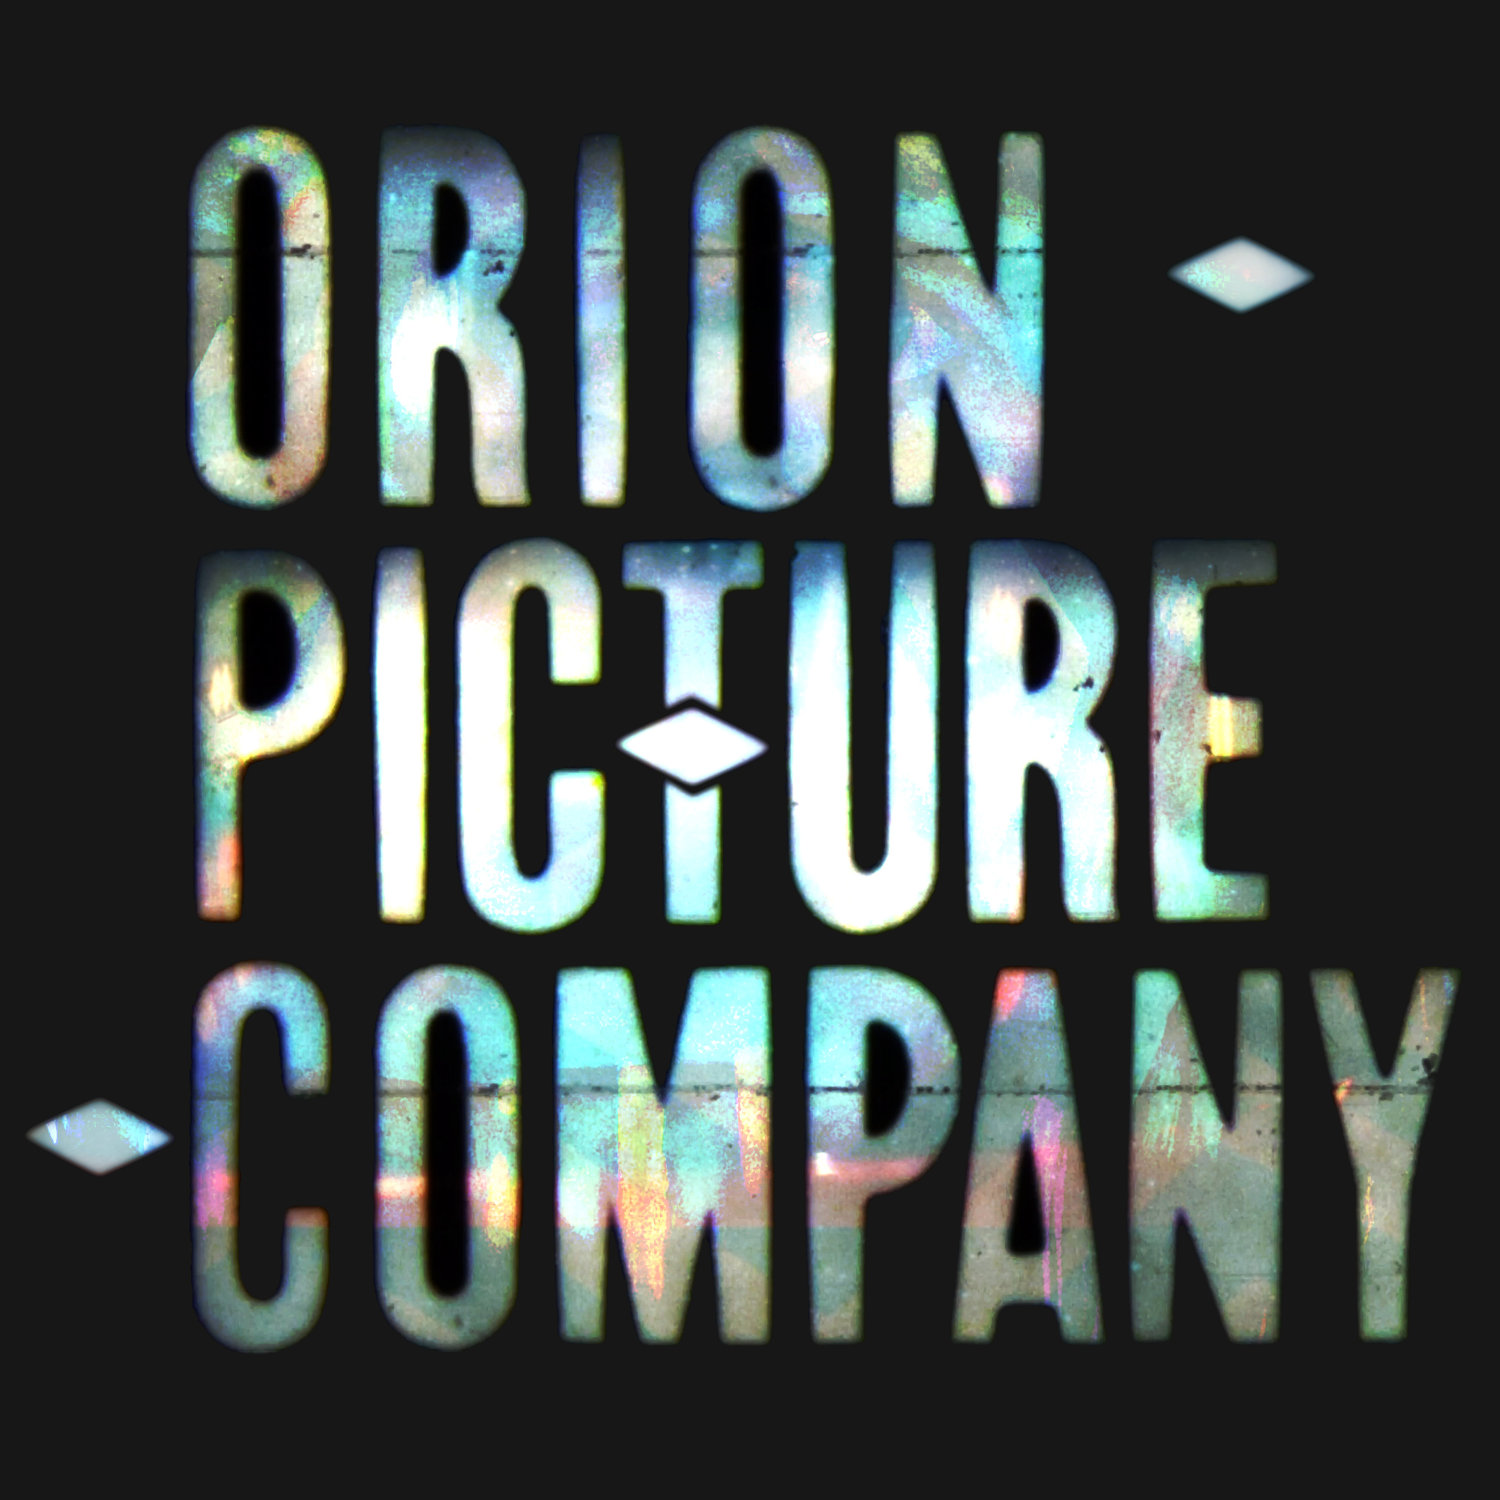 ORION PICTURE COMPANY